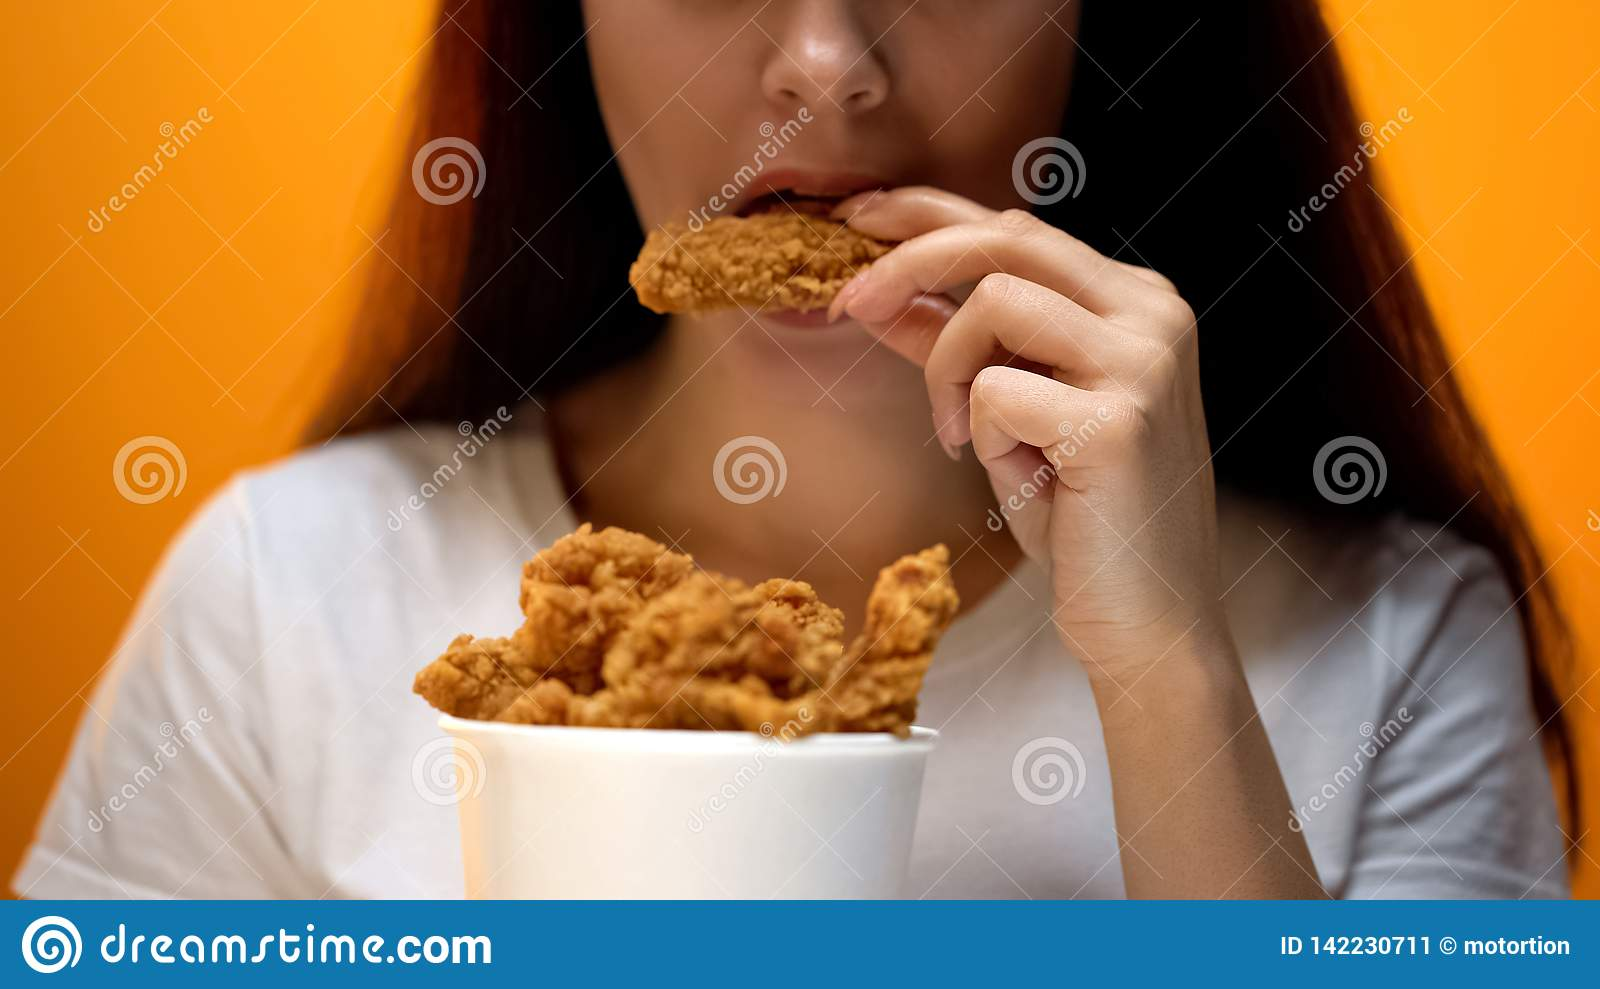 Girl eating chicken wings, high calorie food and health risks, cholesterol